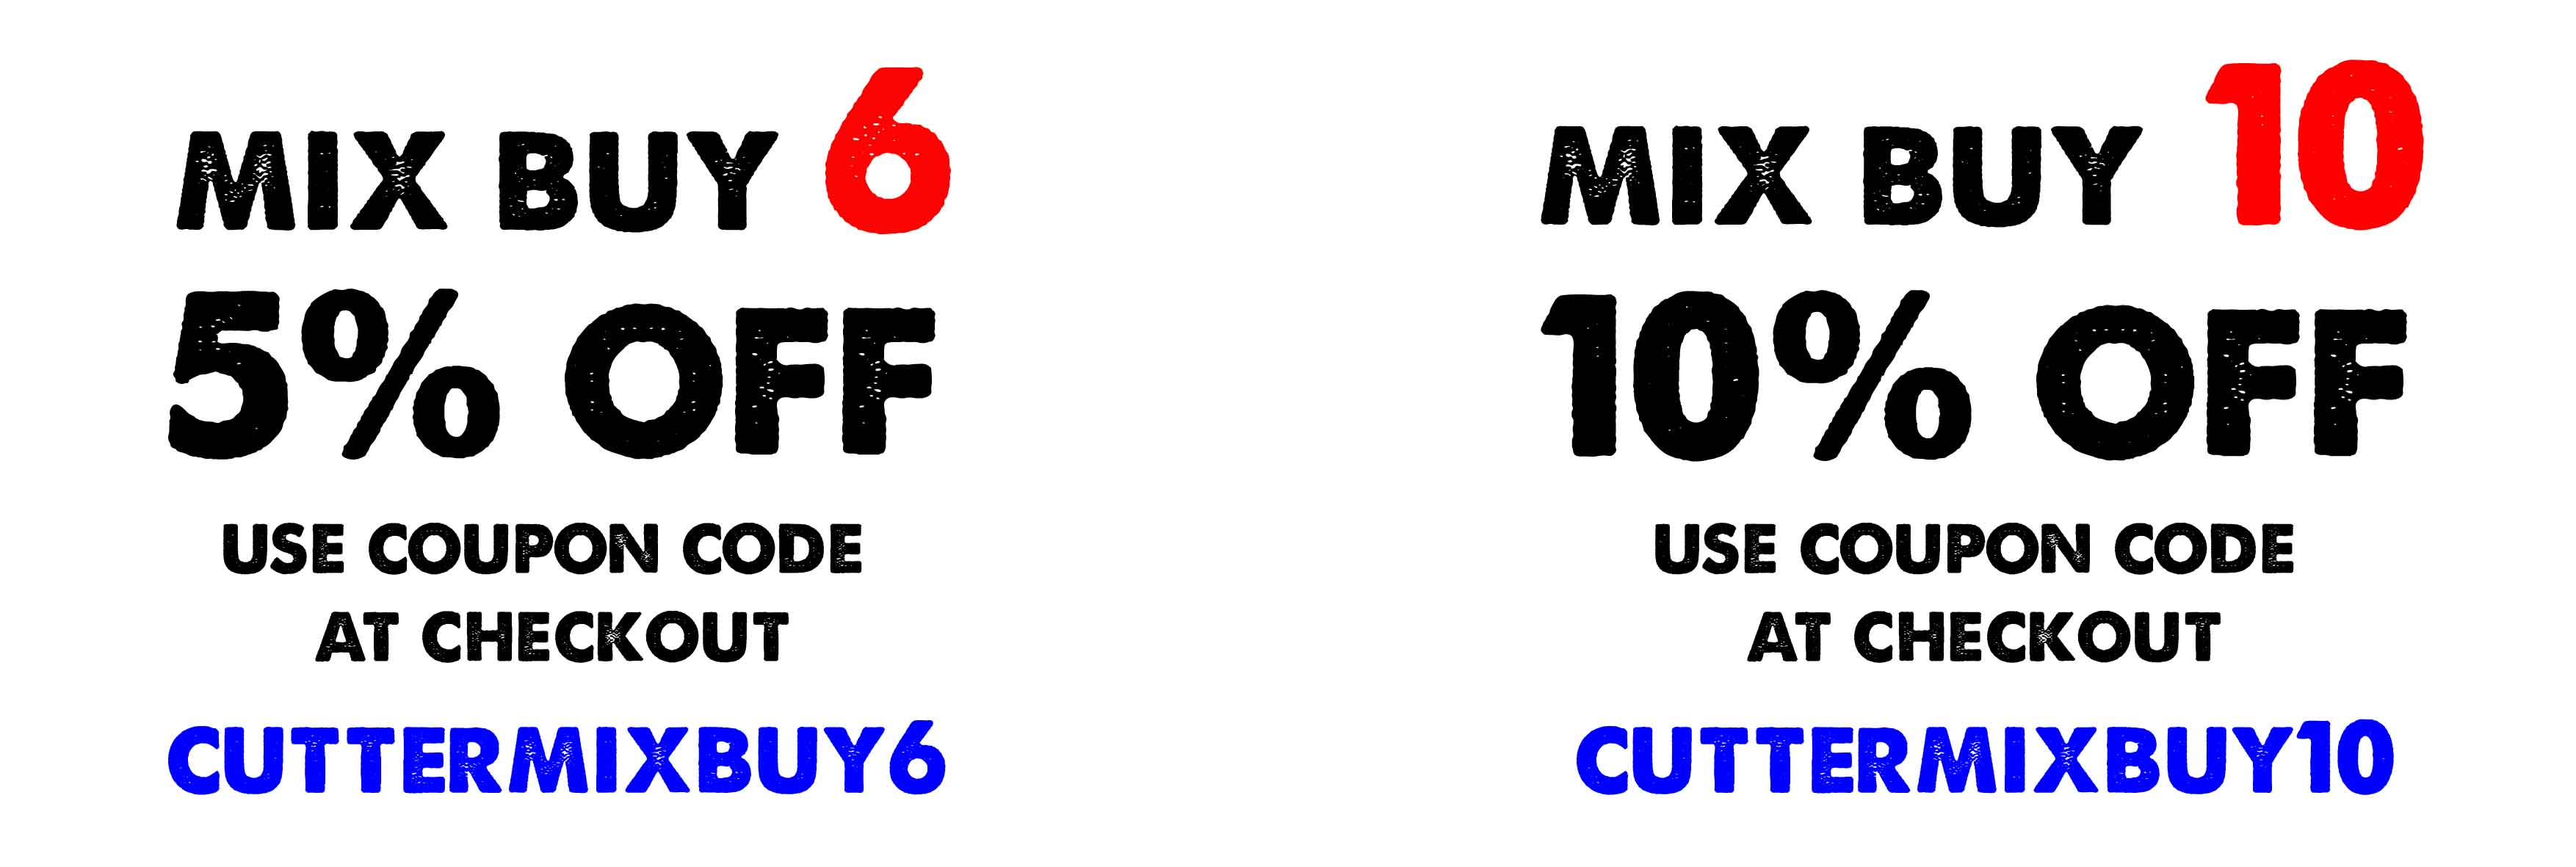 mag-drill-cutters-mix-buy-coupon-edited-1.jpg